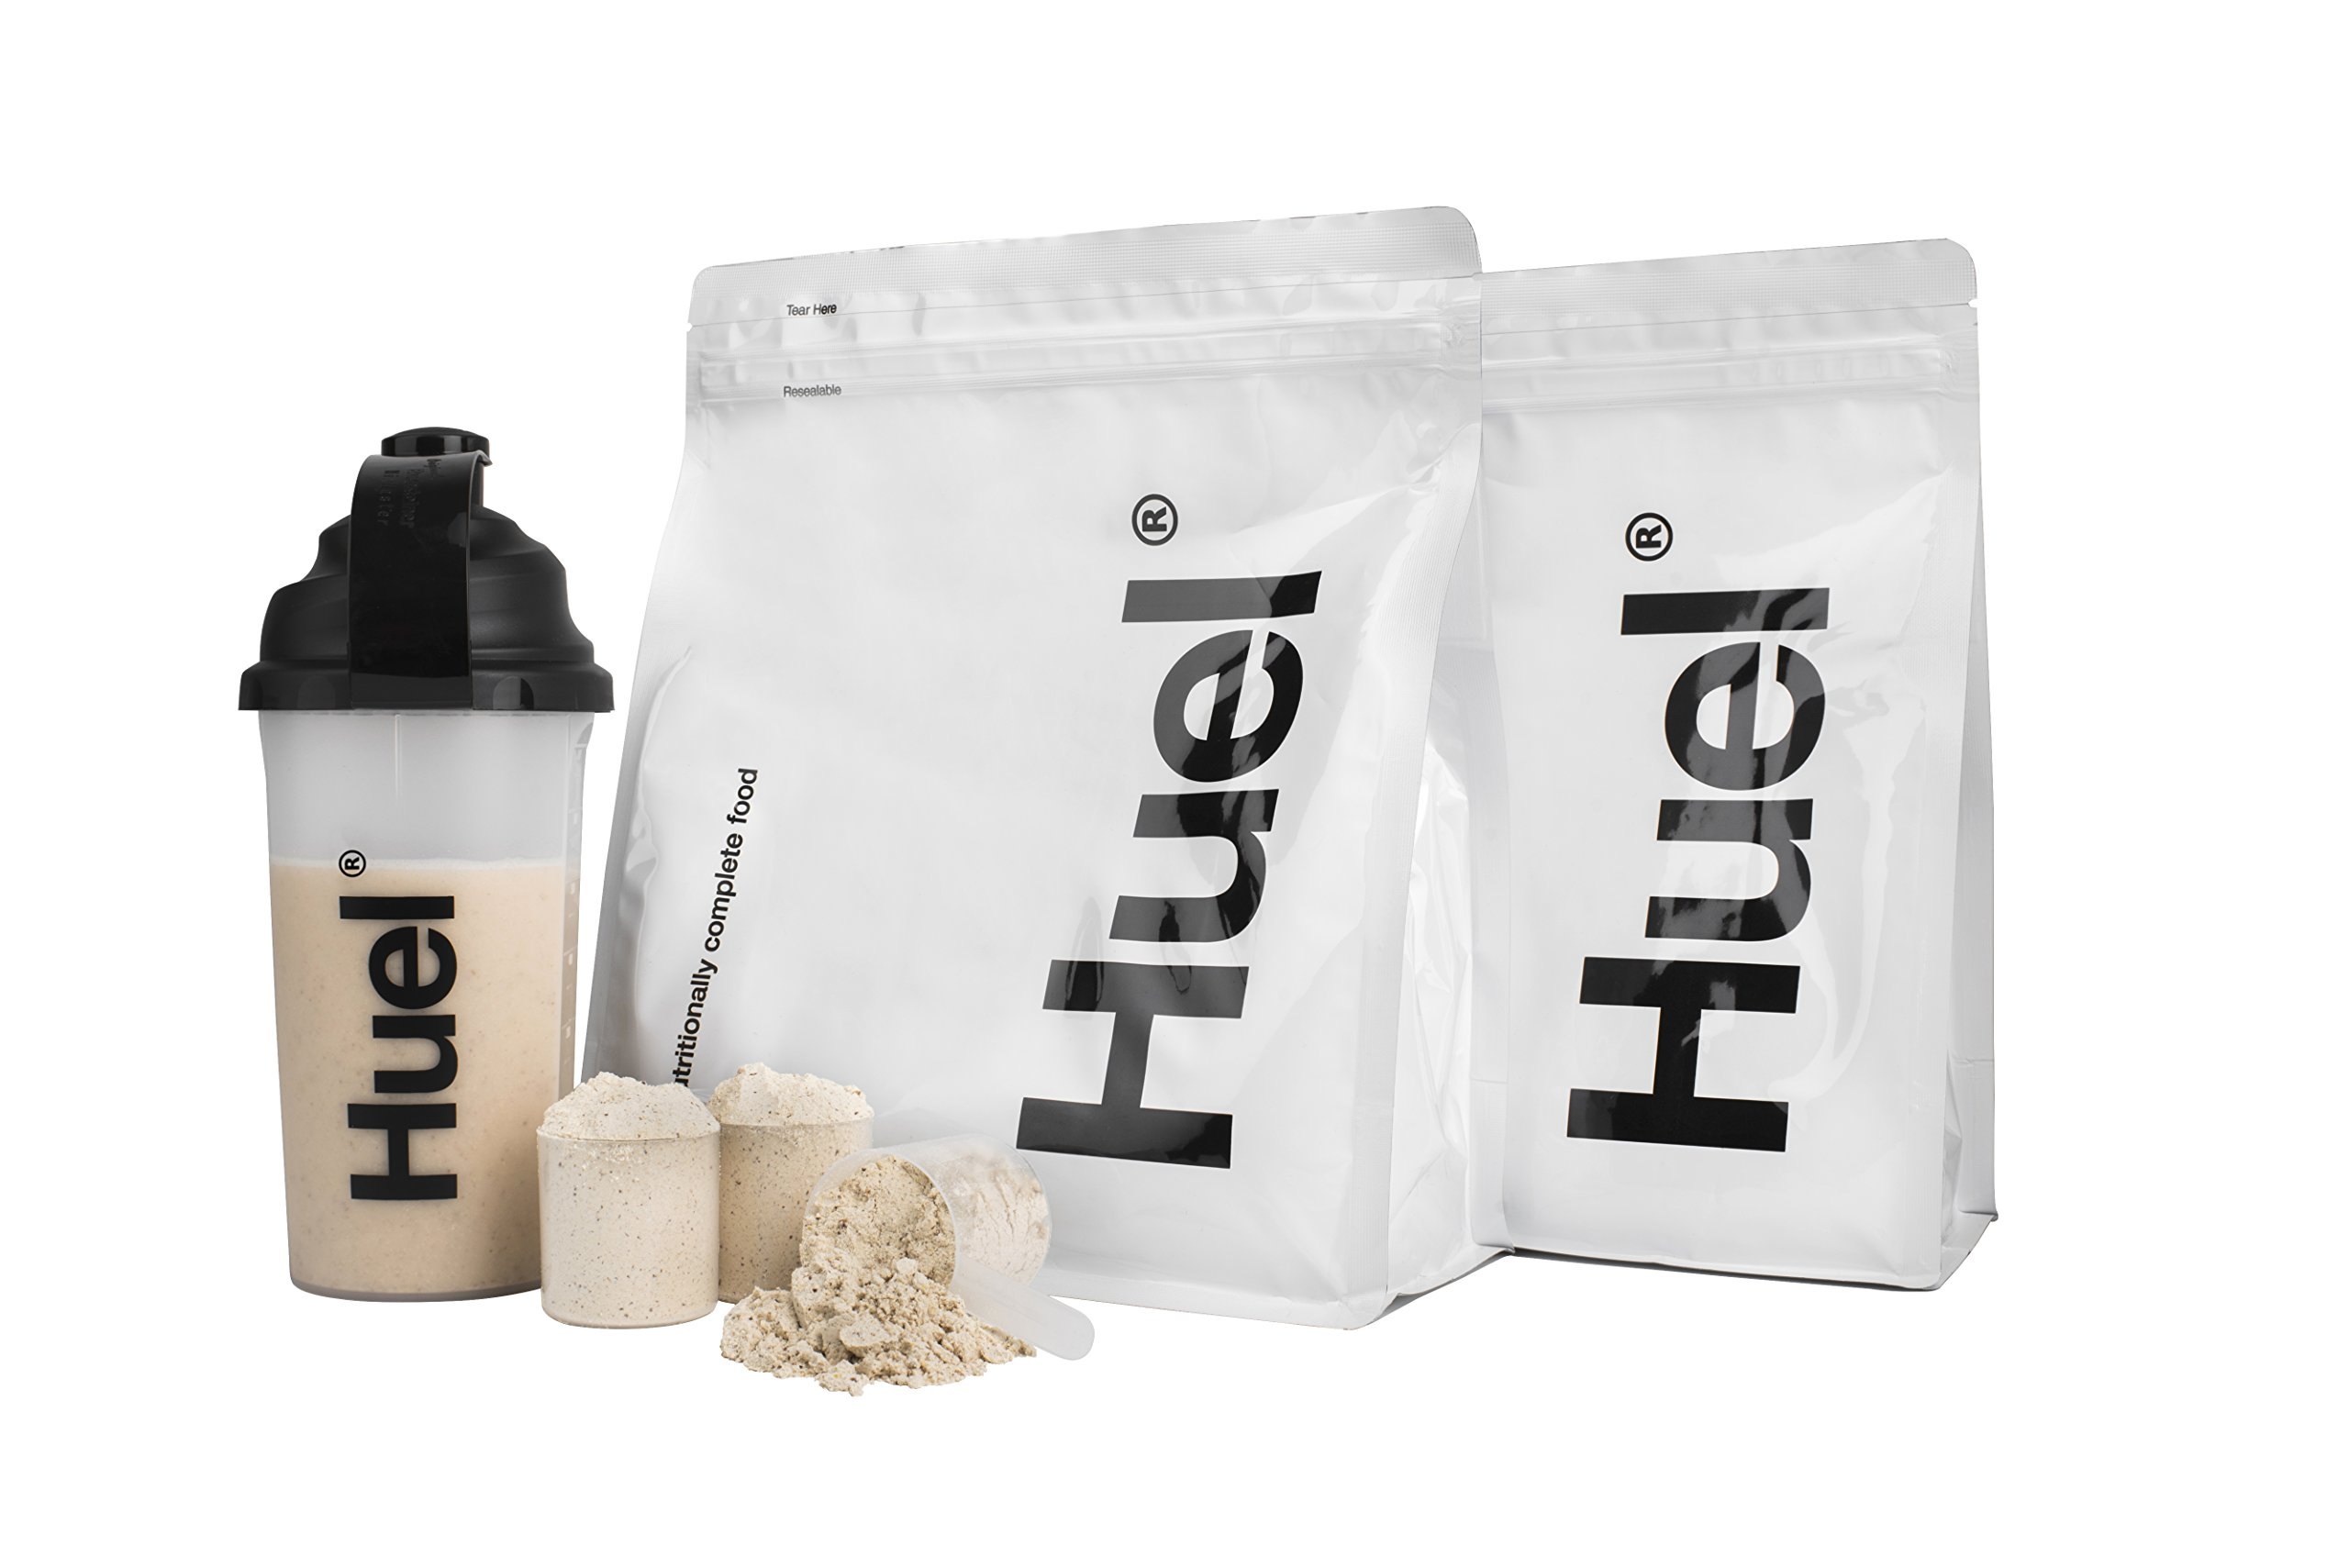 Huel Starter Kit - Includes 2 Pouches of Nutritionally Complete 100% Vegan Powdered Meal, Scoop, Shaker and Booklet (7.7lbs of Powder - 28 Meals) (Vanilla Gluten Free) by Huel